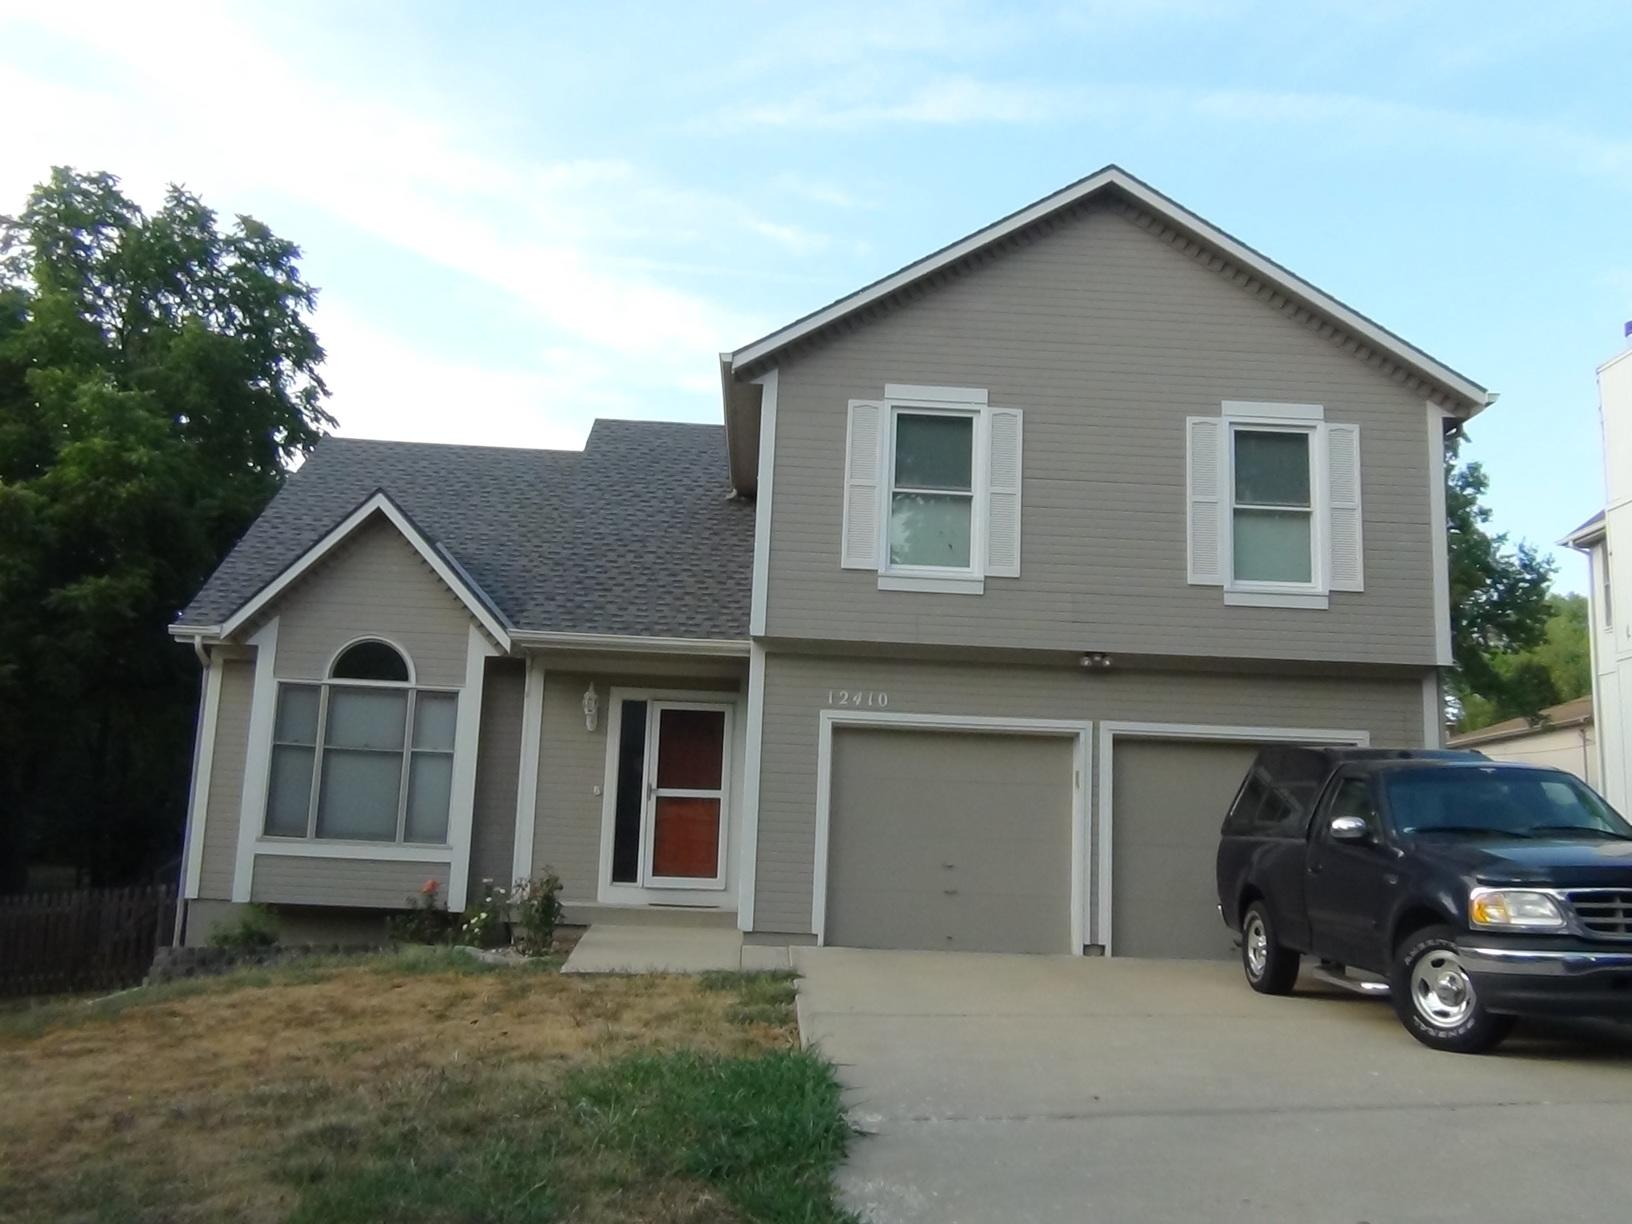 Install James Hardie Siding and new windows in Overland Park, KS